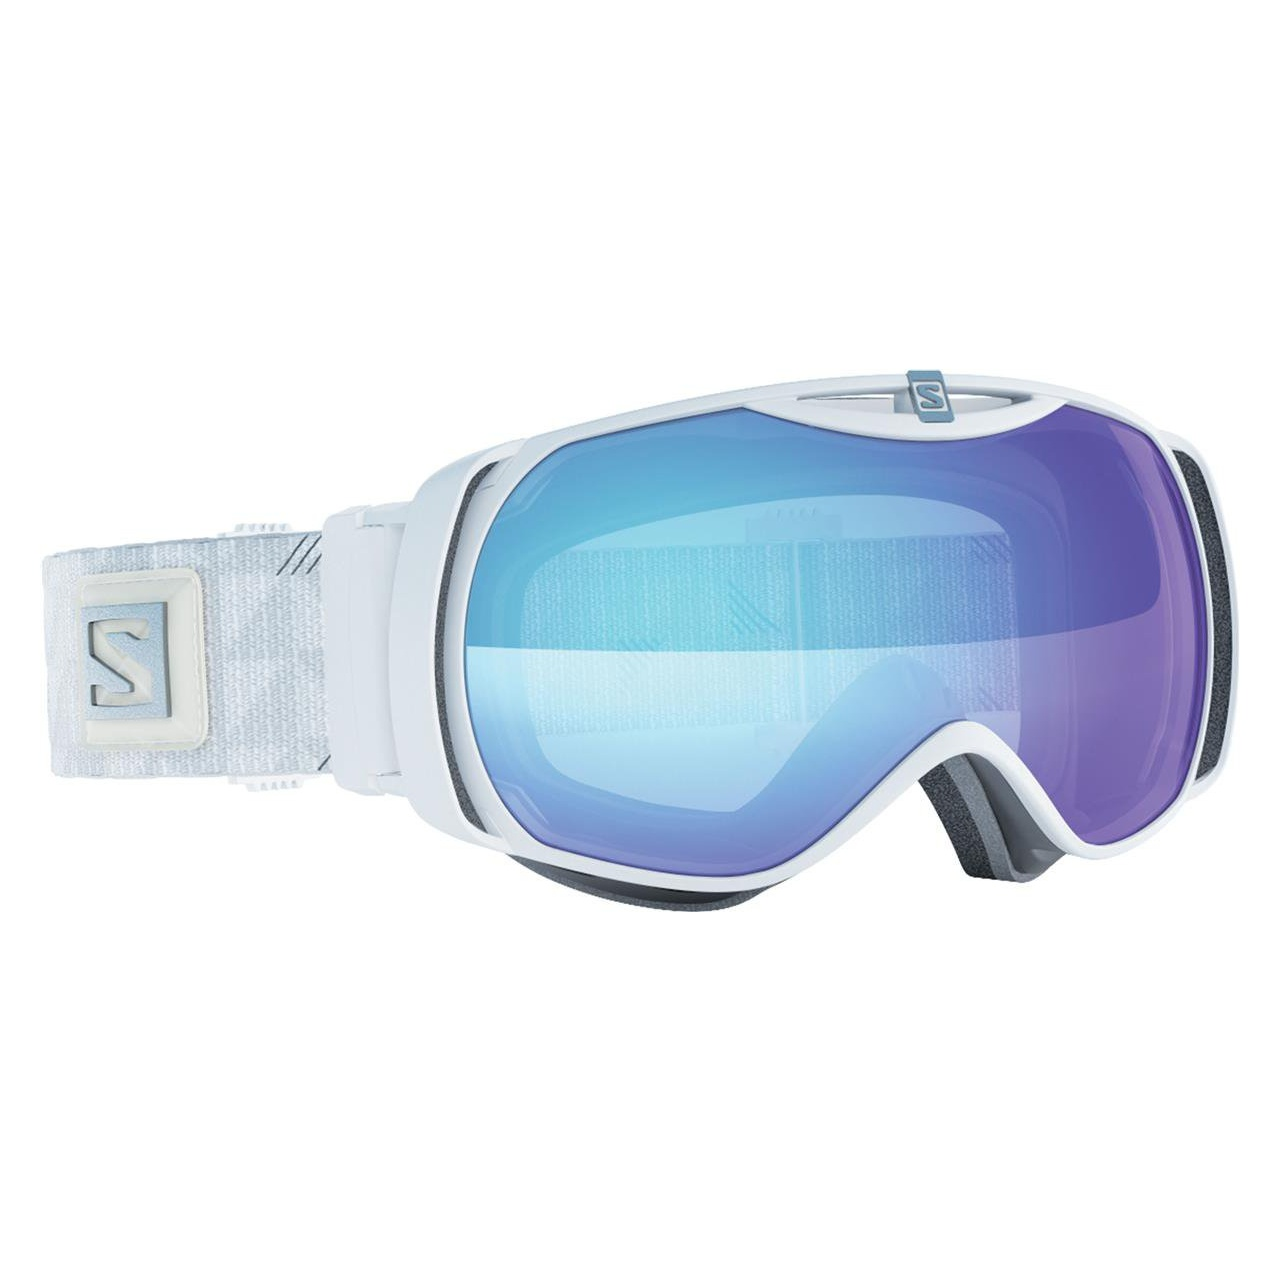 Salomon X-Tend S Photochromatic 2016